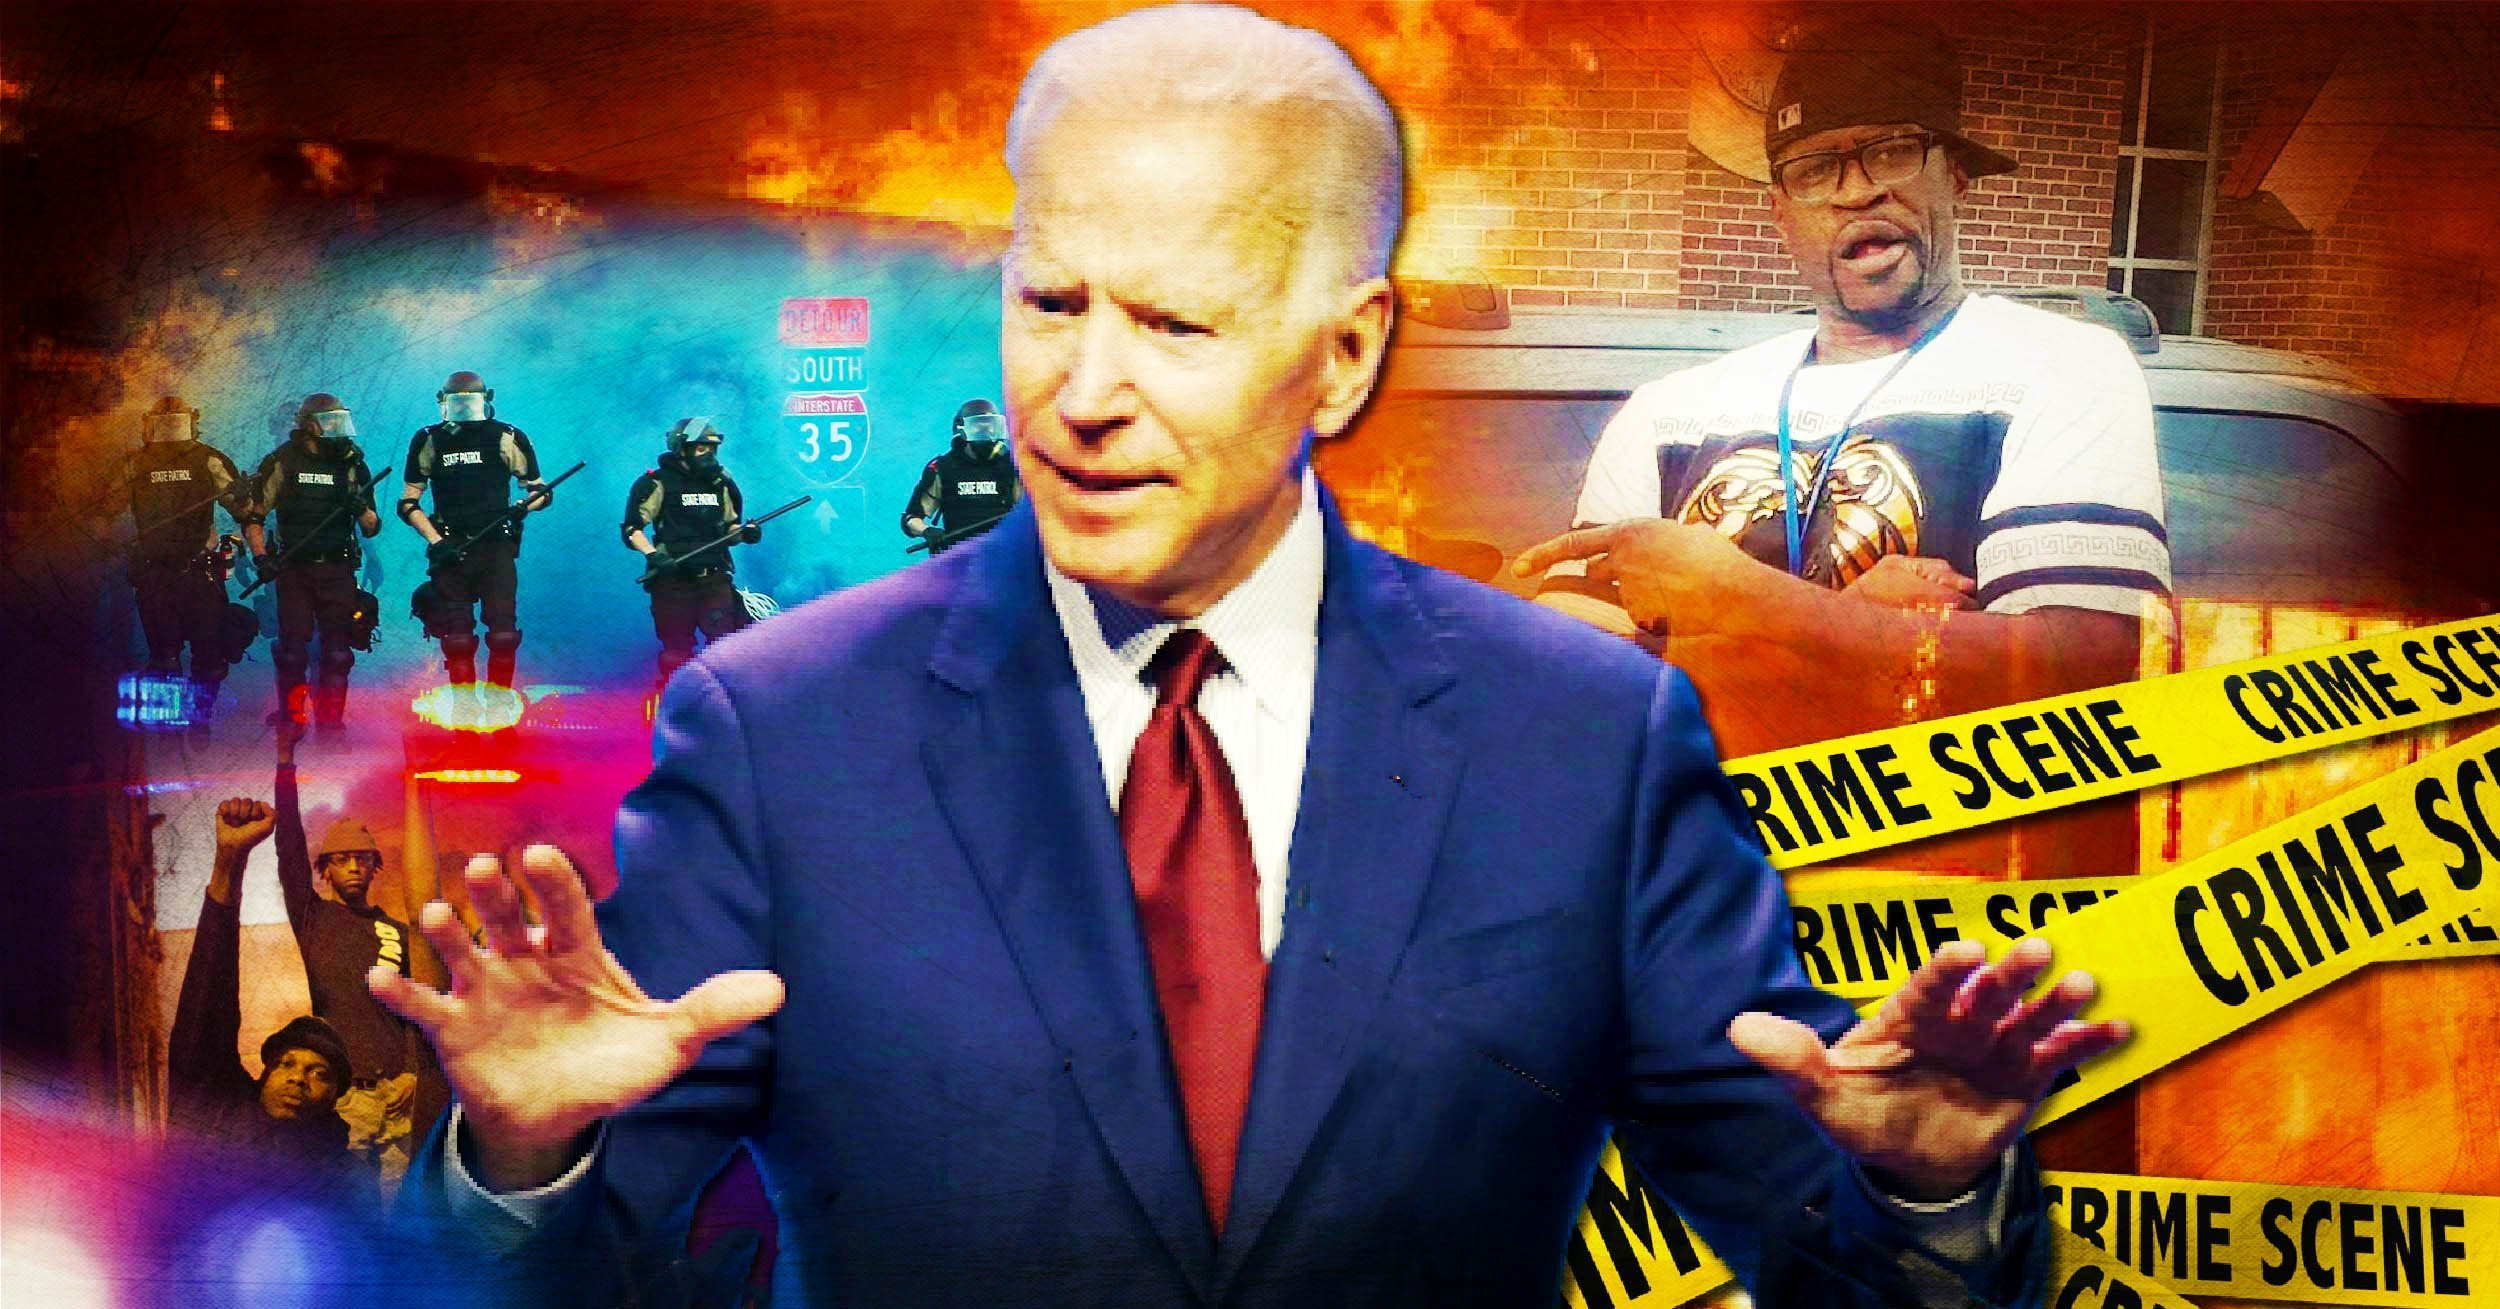 """With Trump Gone, Liberals Now Scrambling Like Rats to Put Their """"Crime Surge"""" Genie Back in the Bottle - Revolver"""